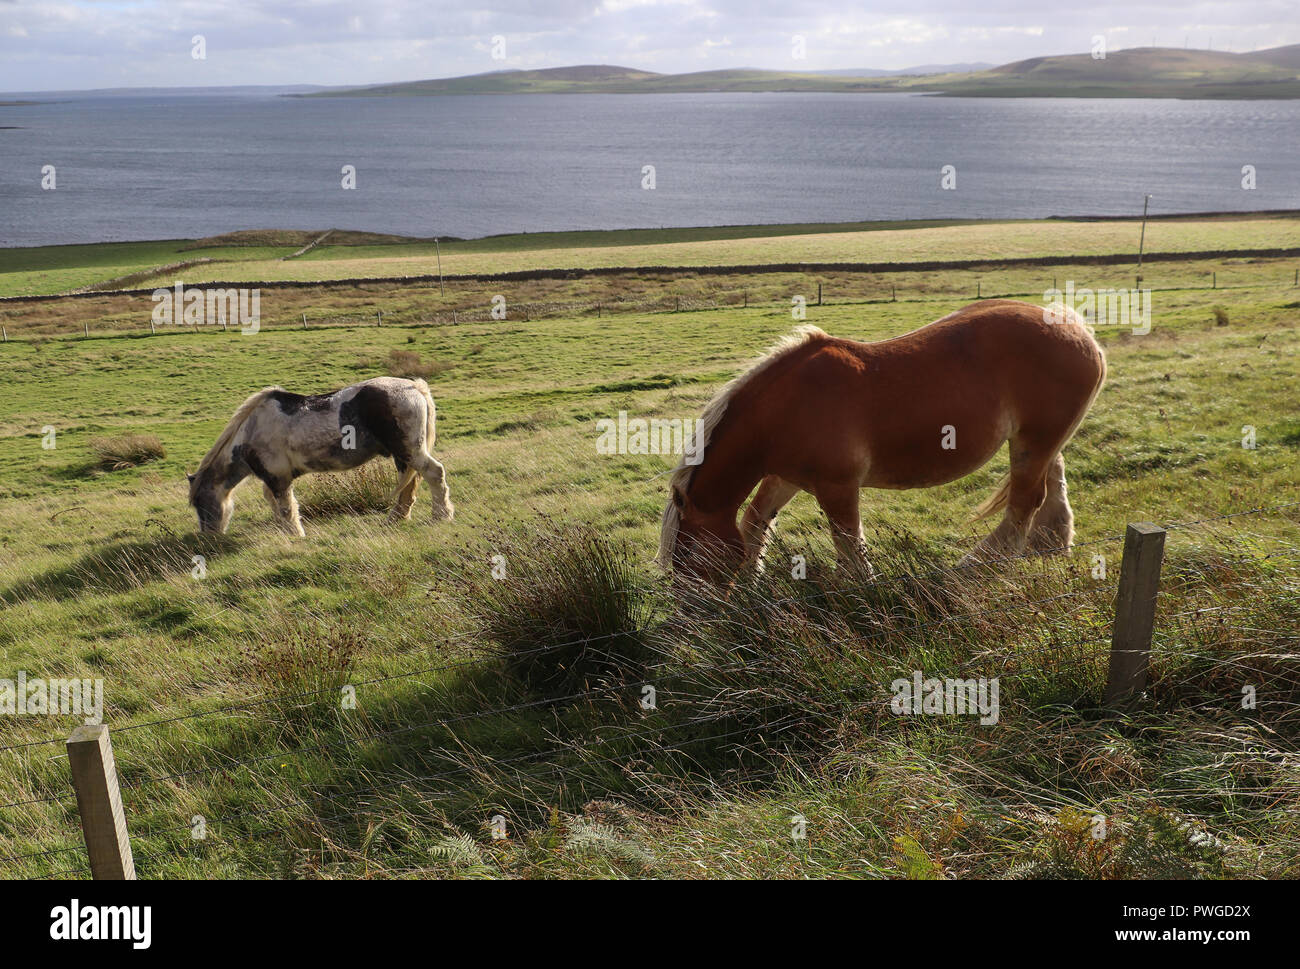 Two beautiful Clydesdale horses graze in a grassy green field that slopes down to the shore of Eynhallow Sound on Rousay Island, Orkney, Scotland. - Stock Image